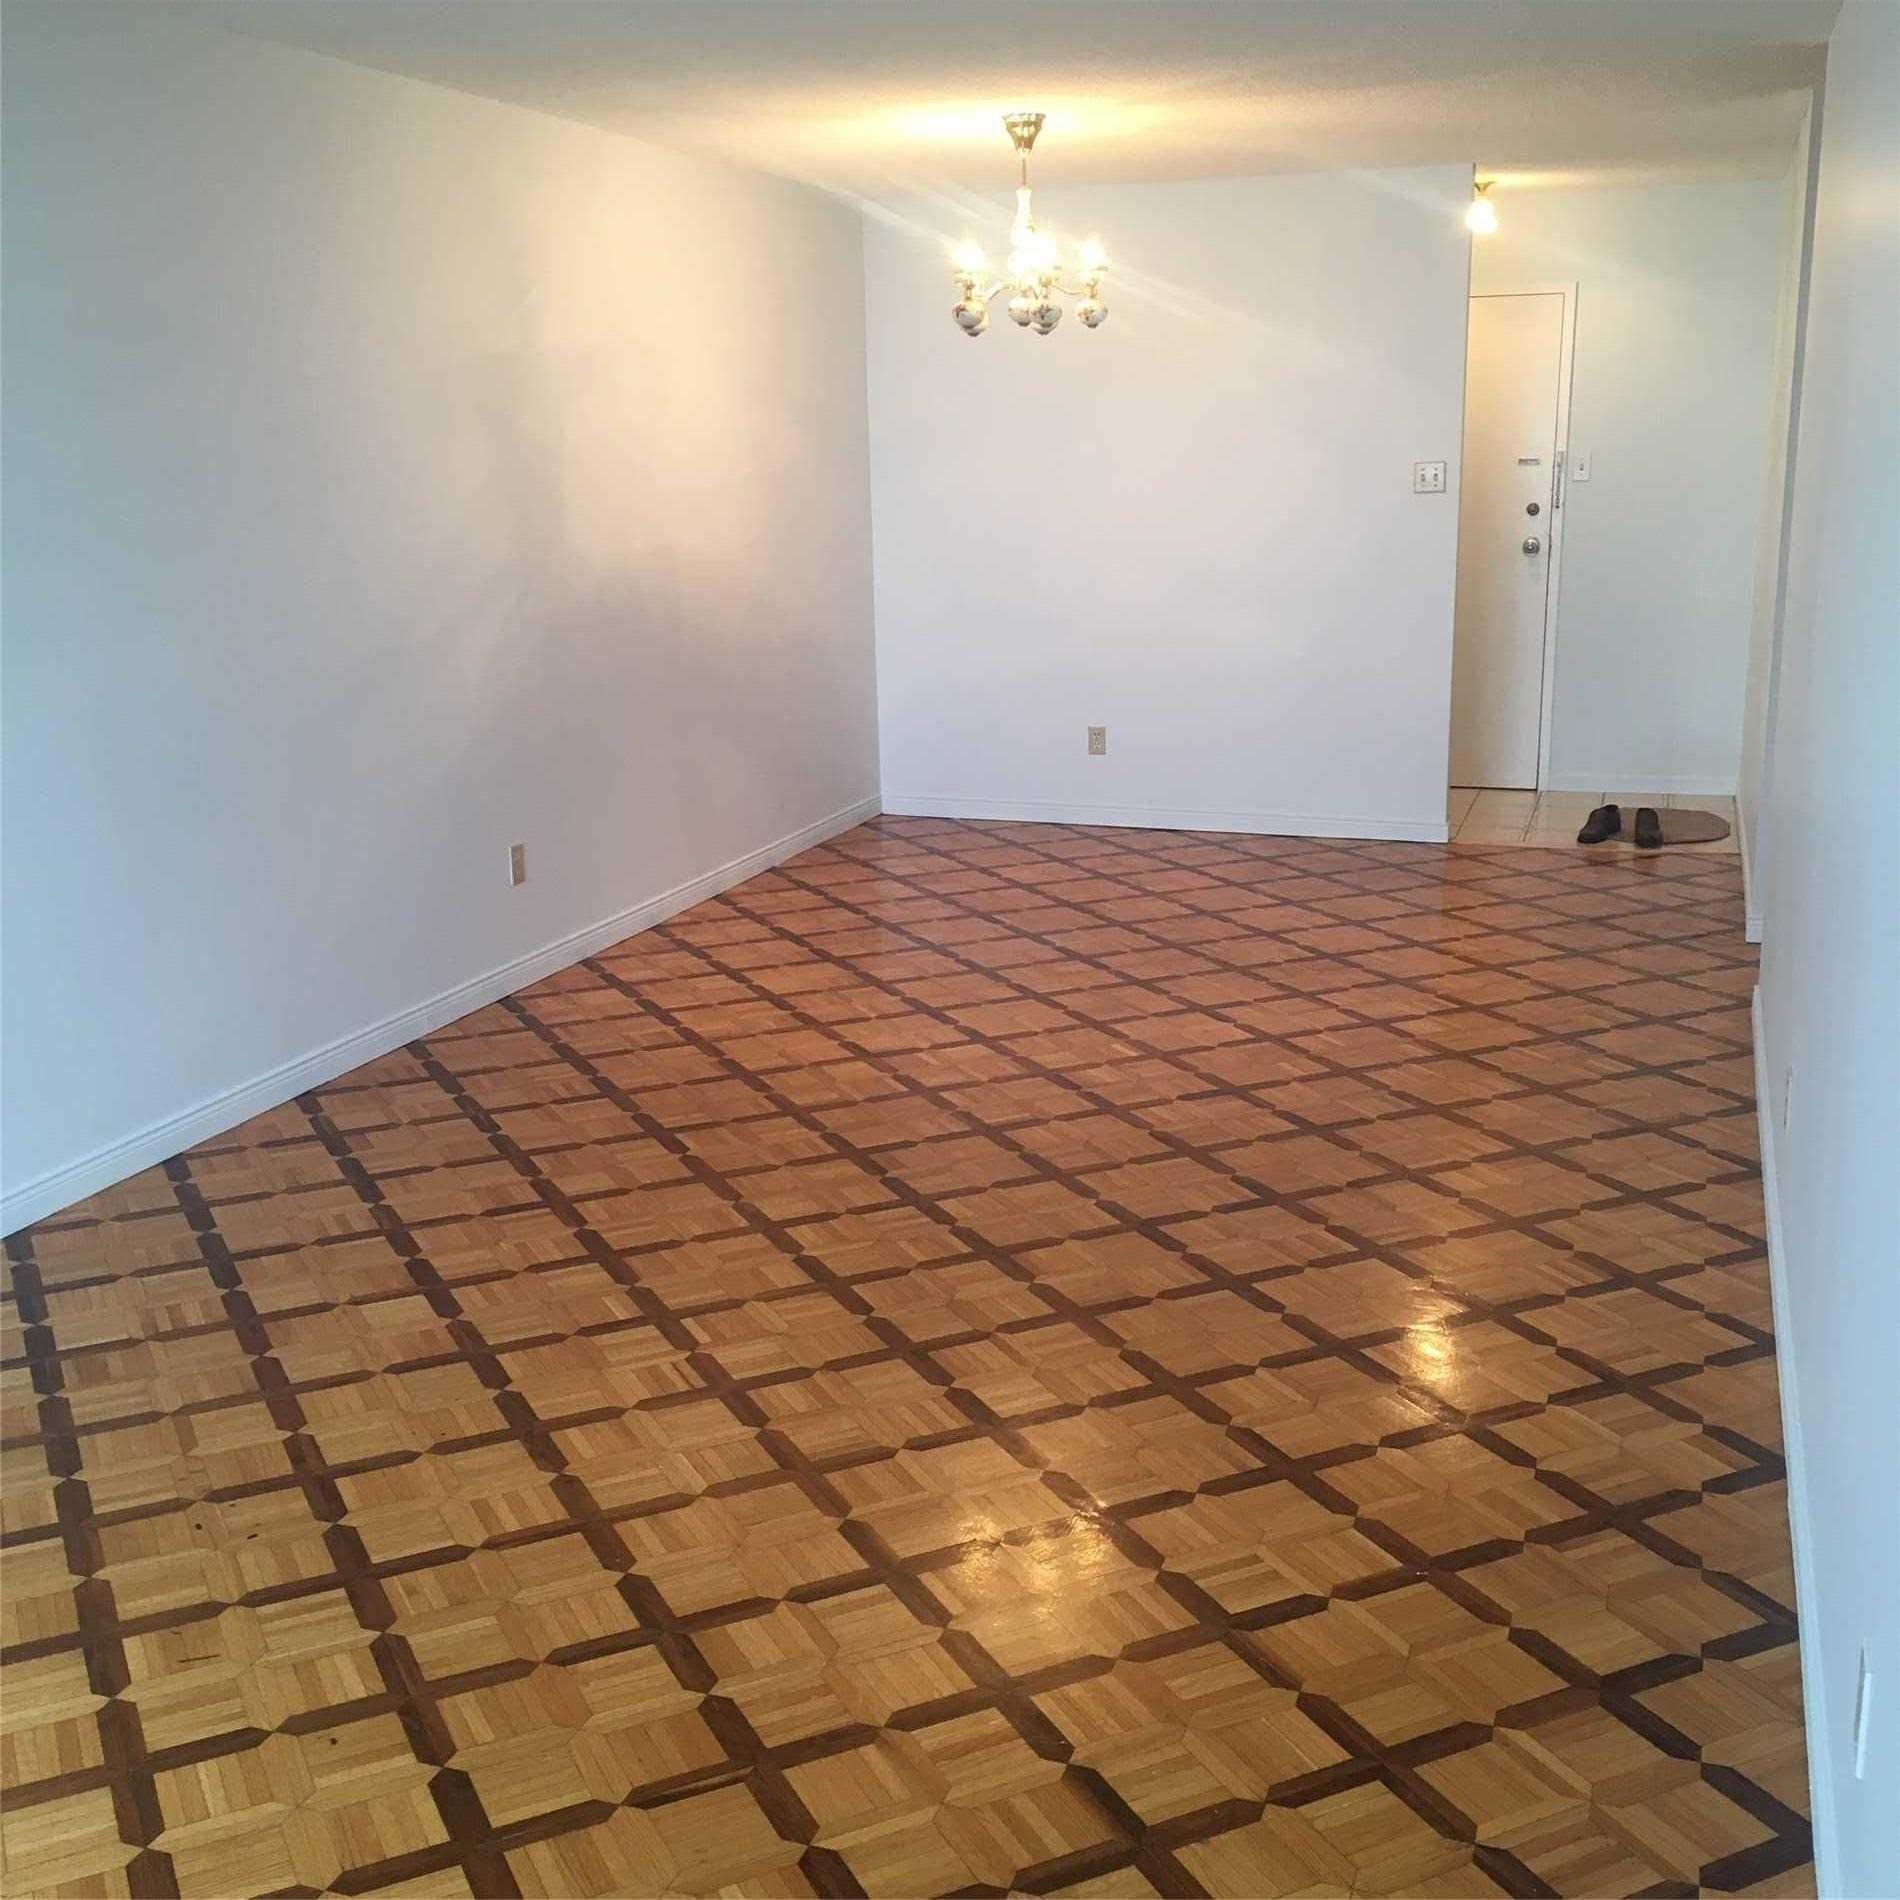 Image 2 of 9 showing inside of 3 Bedroom Condo Apt Apartment for Lease at 10 Tangreen Crt Unit# 2405, Toronto M2M4B9